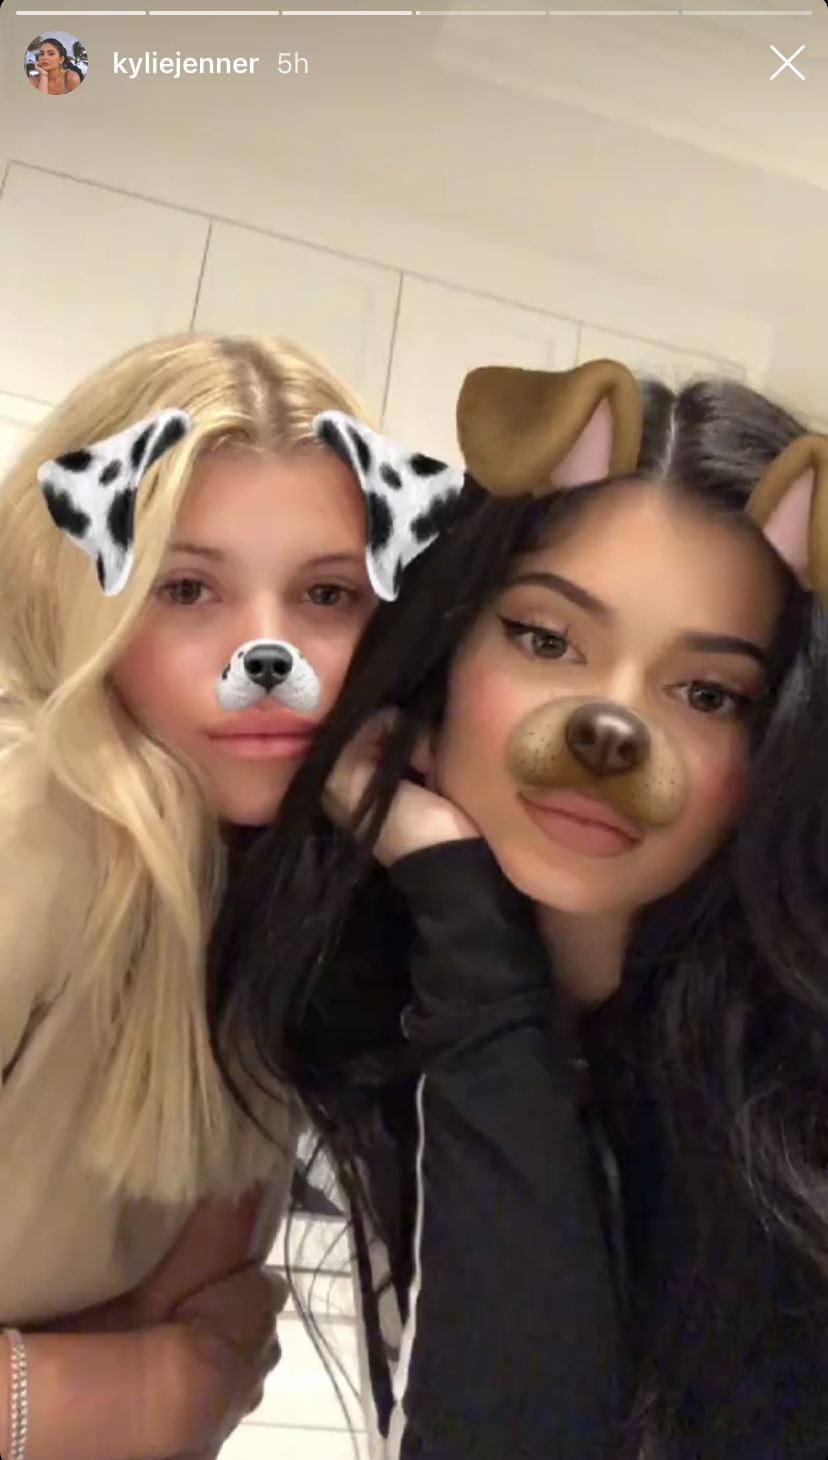 Kylie Jenner Shares a Throwback Video Clip With BFF Sofia Richie: 'Miss You'